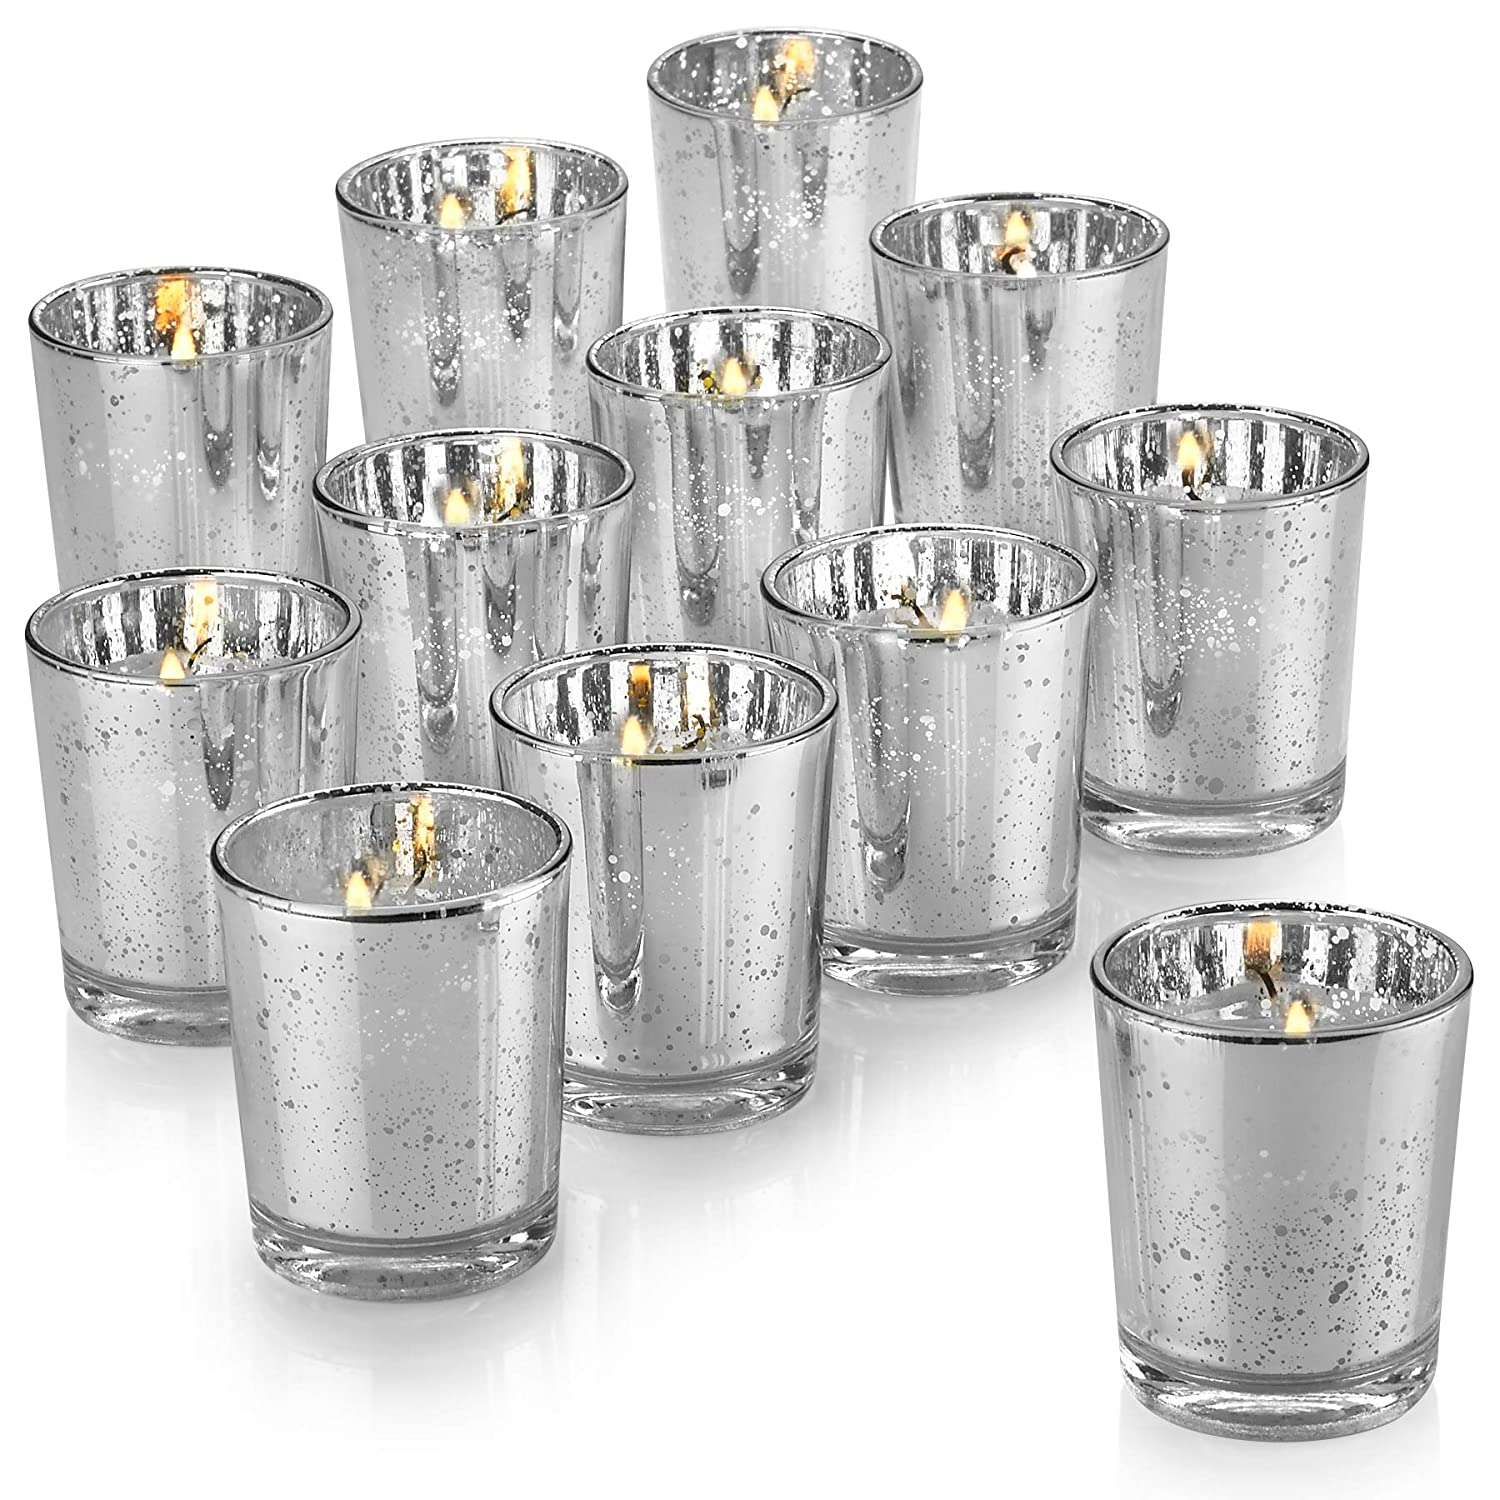 547819277b Amazon.com: PARNOO Mercury Glass Candle Holders for Votive Candles and  Tealights Set of 12 – Sparkled Silver Finish Perfect for Wedding and Home  Decor: Home ...